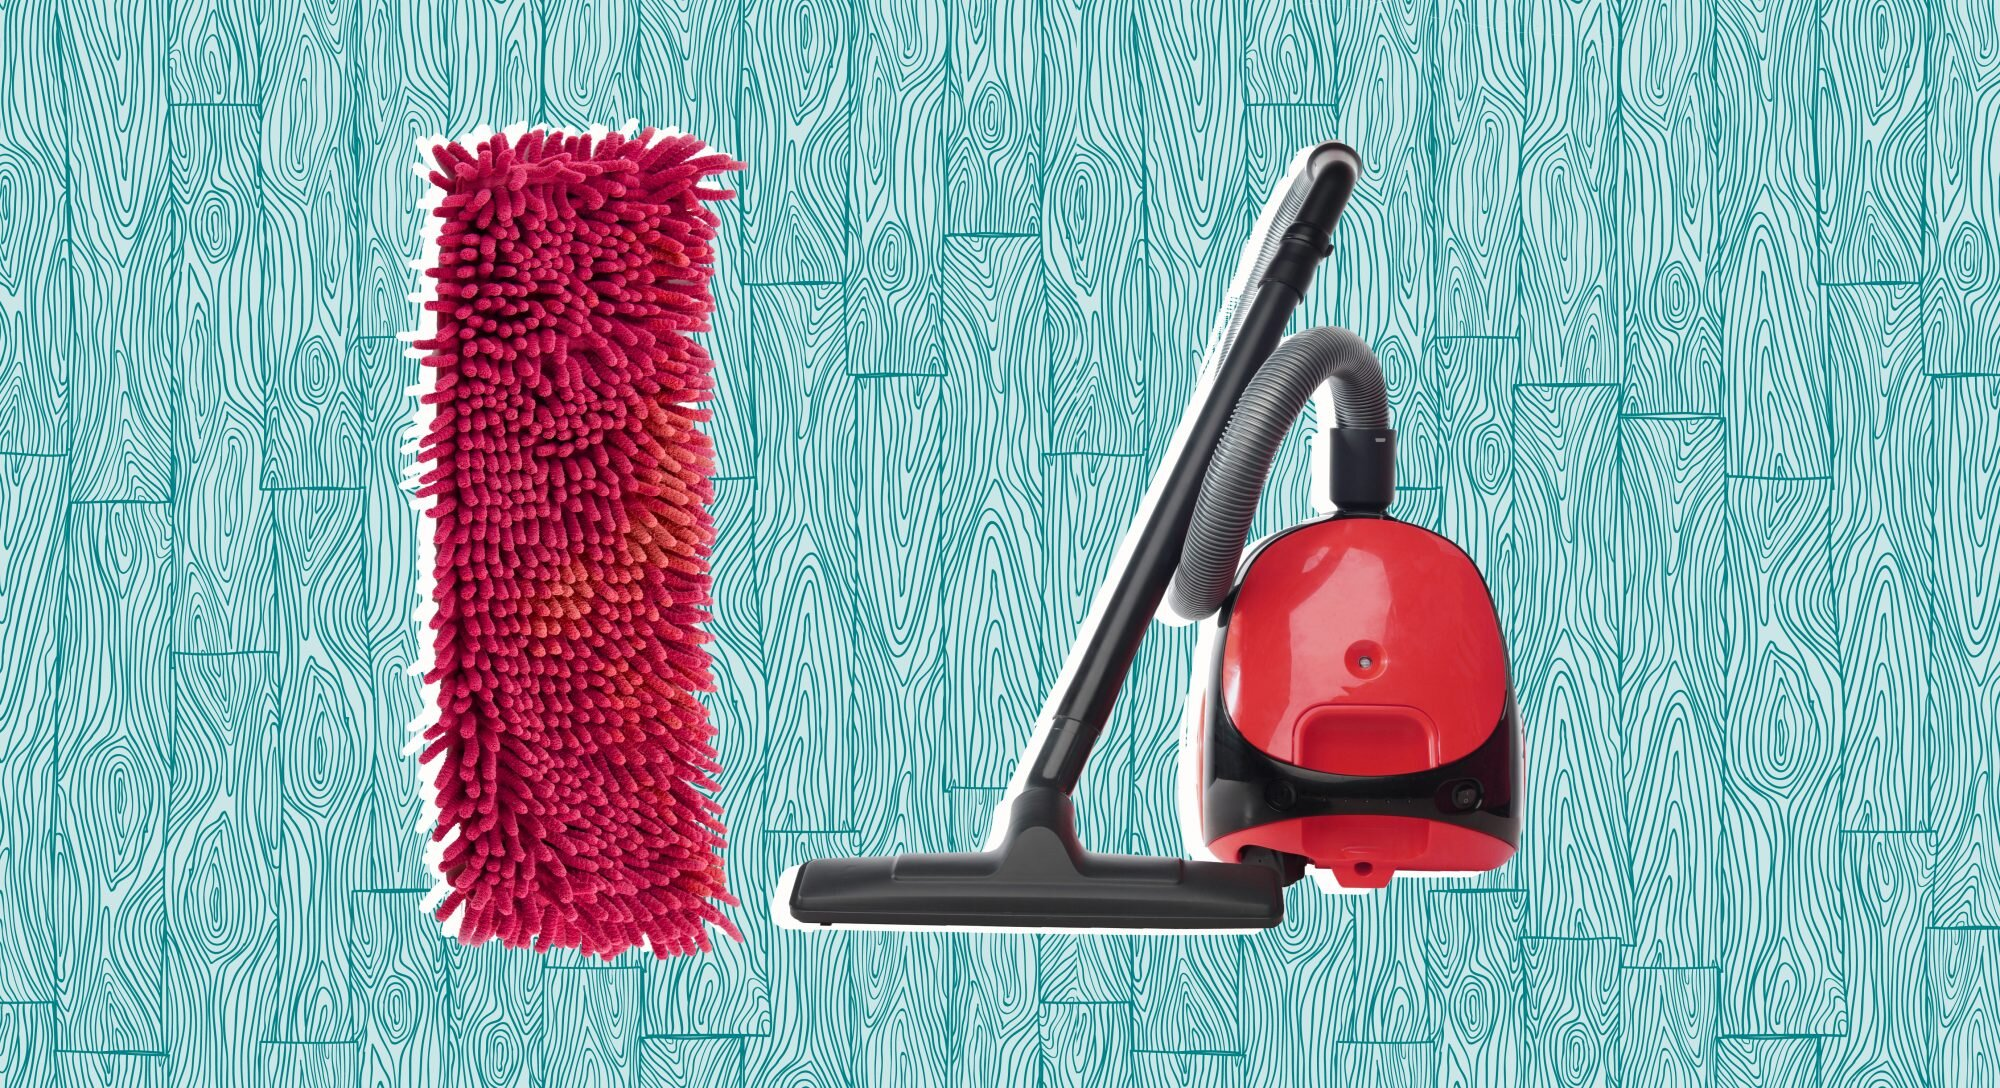 How To Clean Laminate Wood Floors The Right Way Real Simple